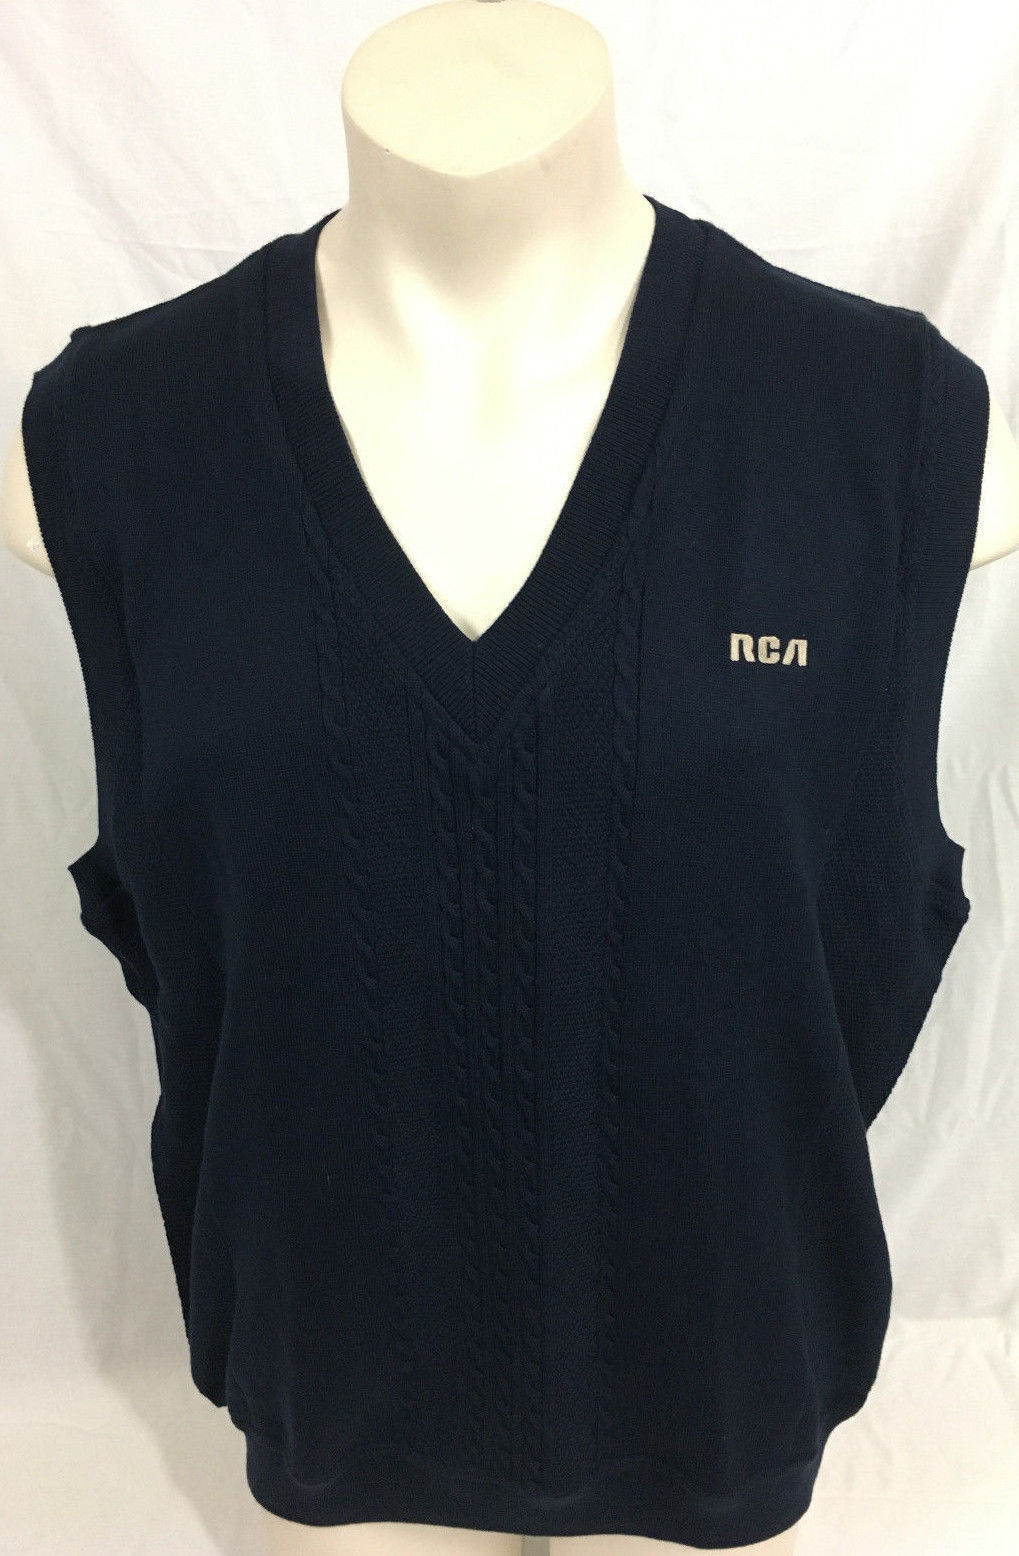 Cutter & Buck Dark Navy Vest RCA Cable Knit New With Tags Men's XL